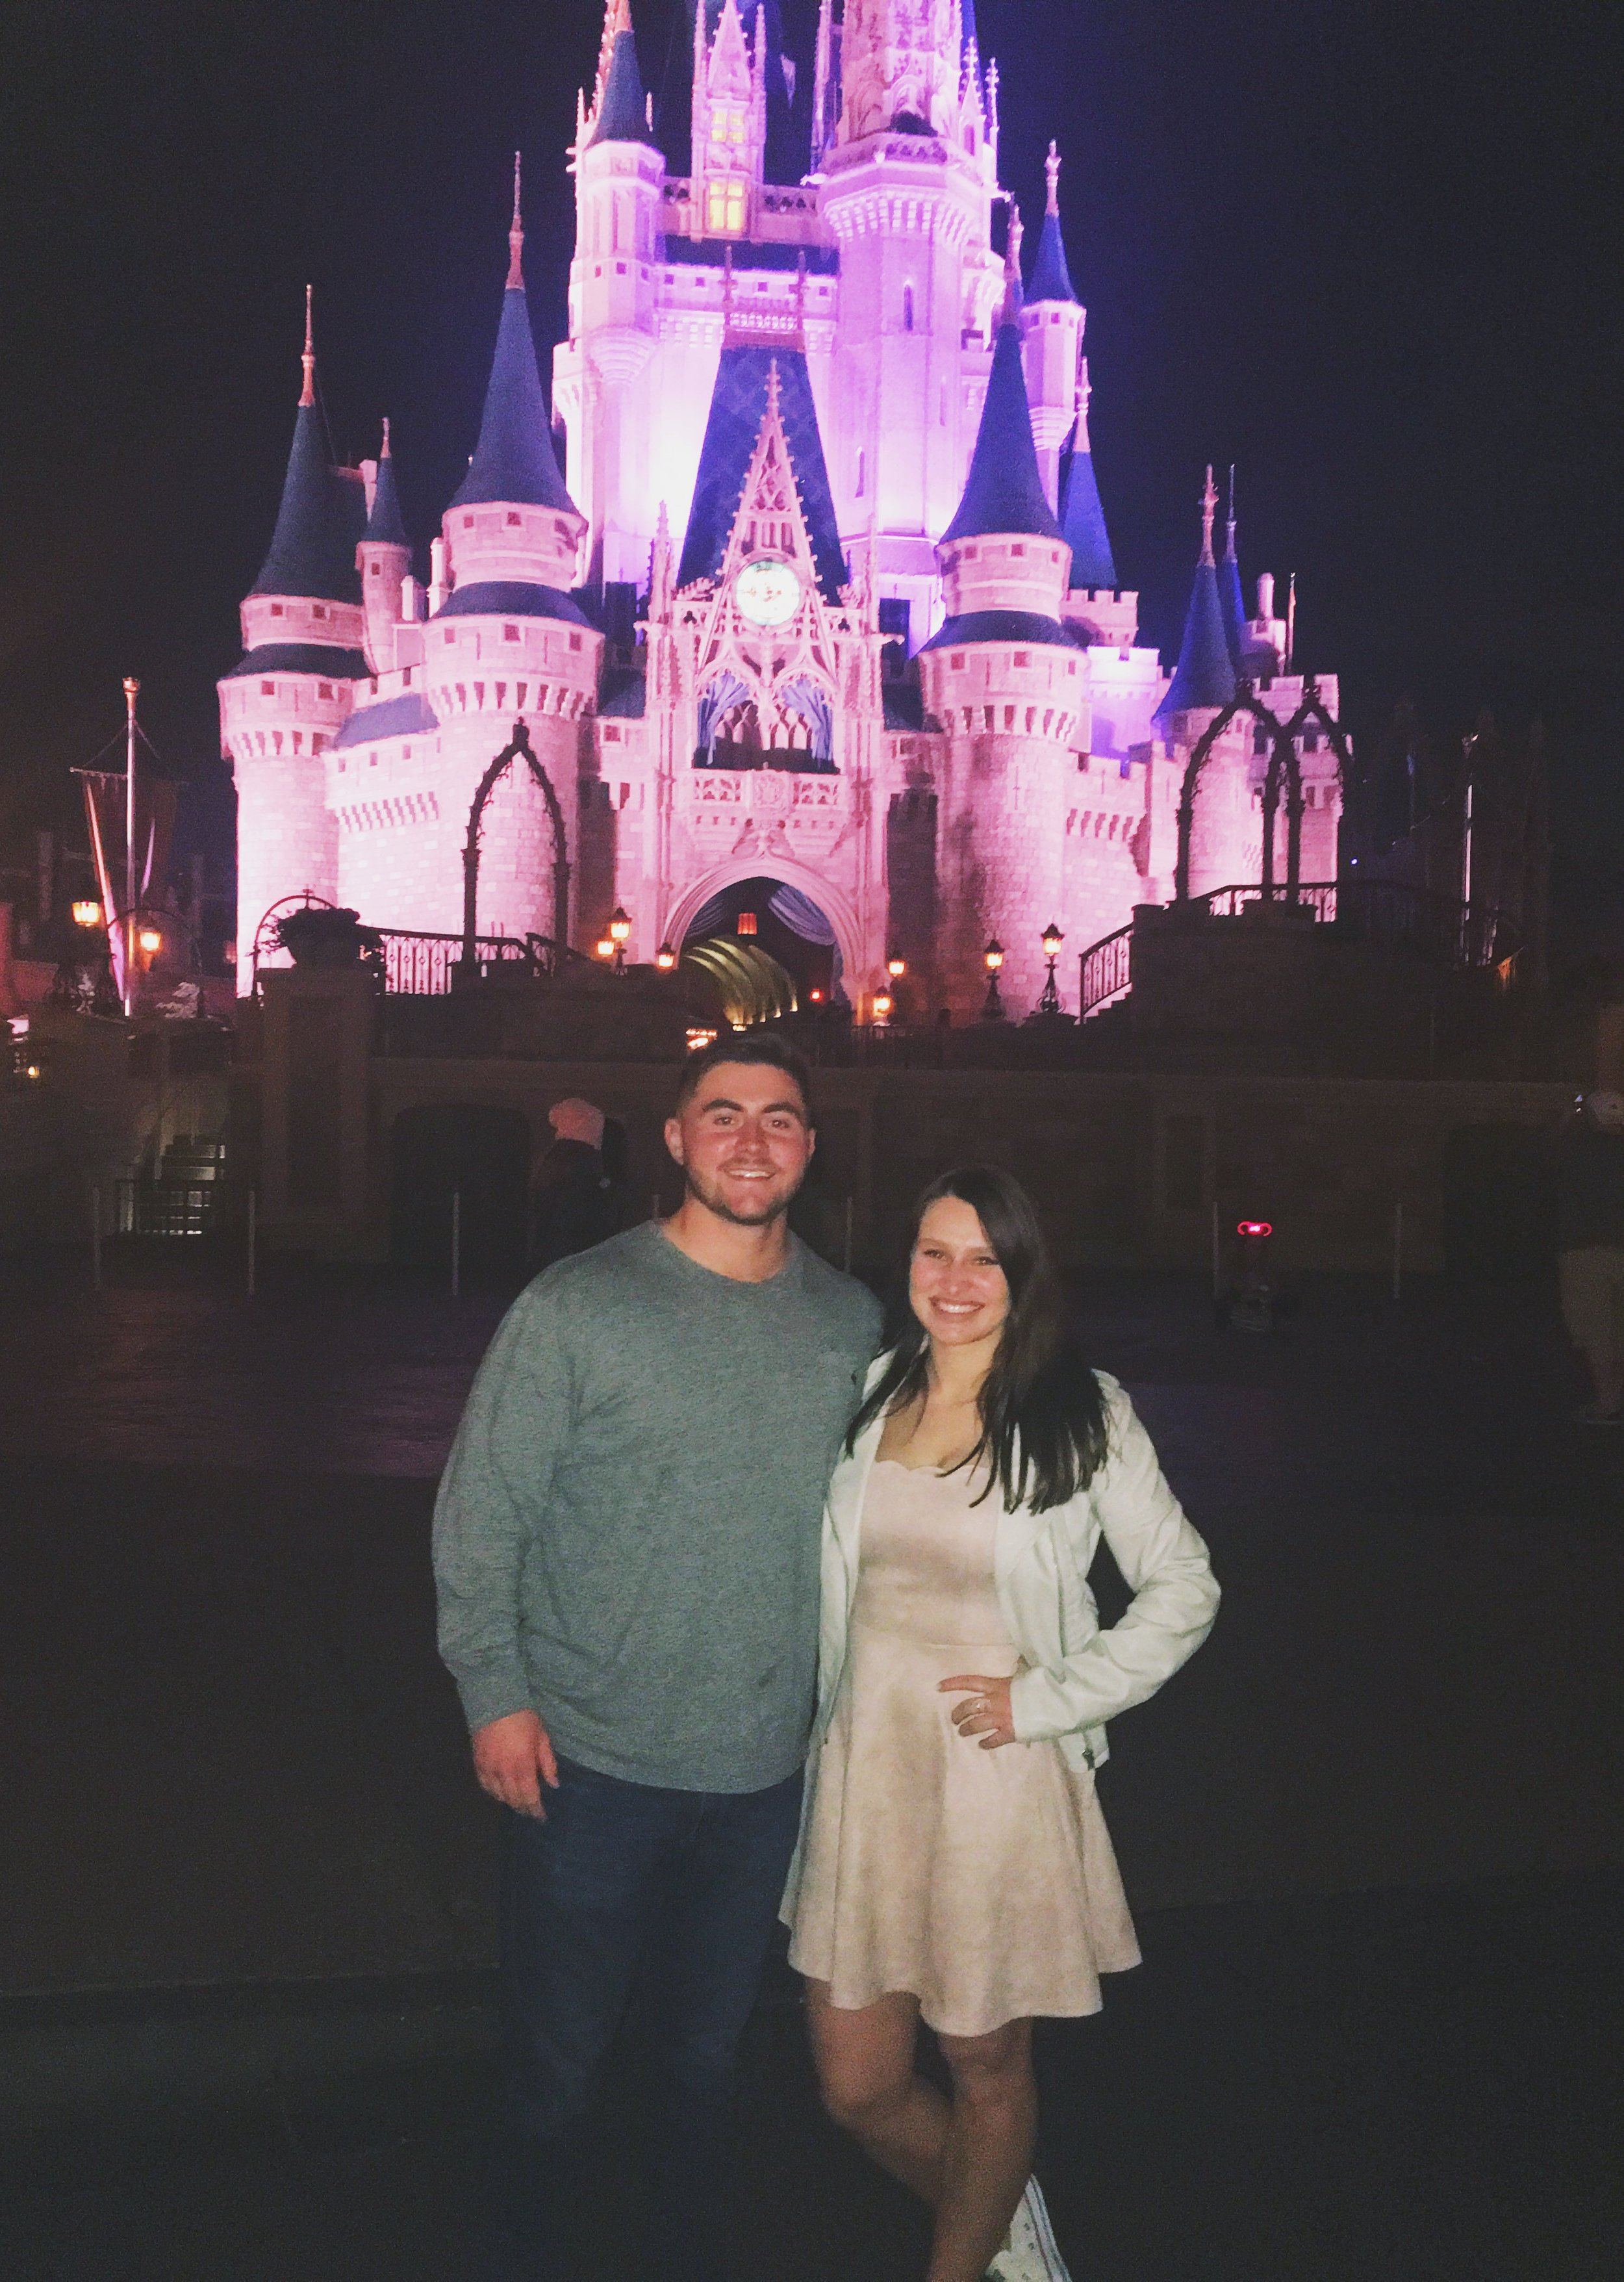 Because Disney is more fun when you have an awesome person to go with.